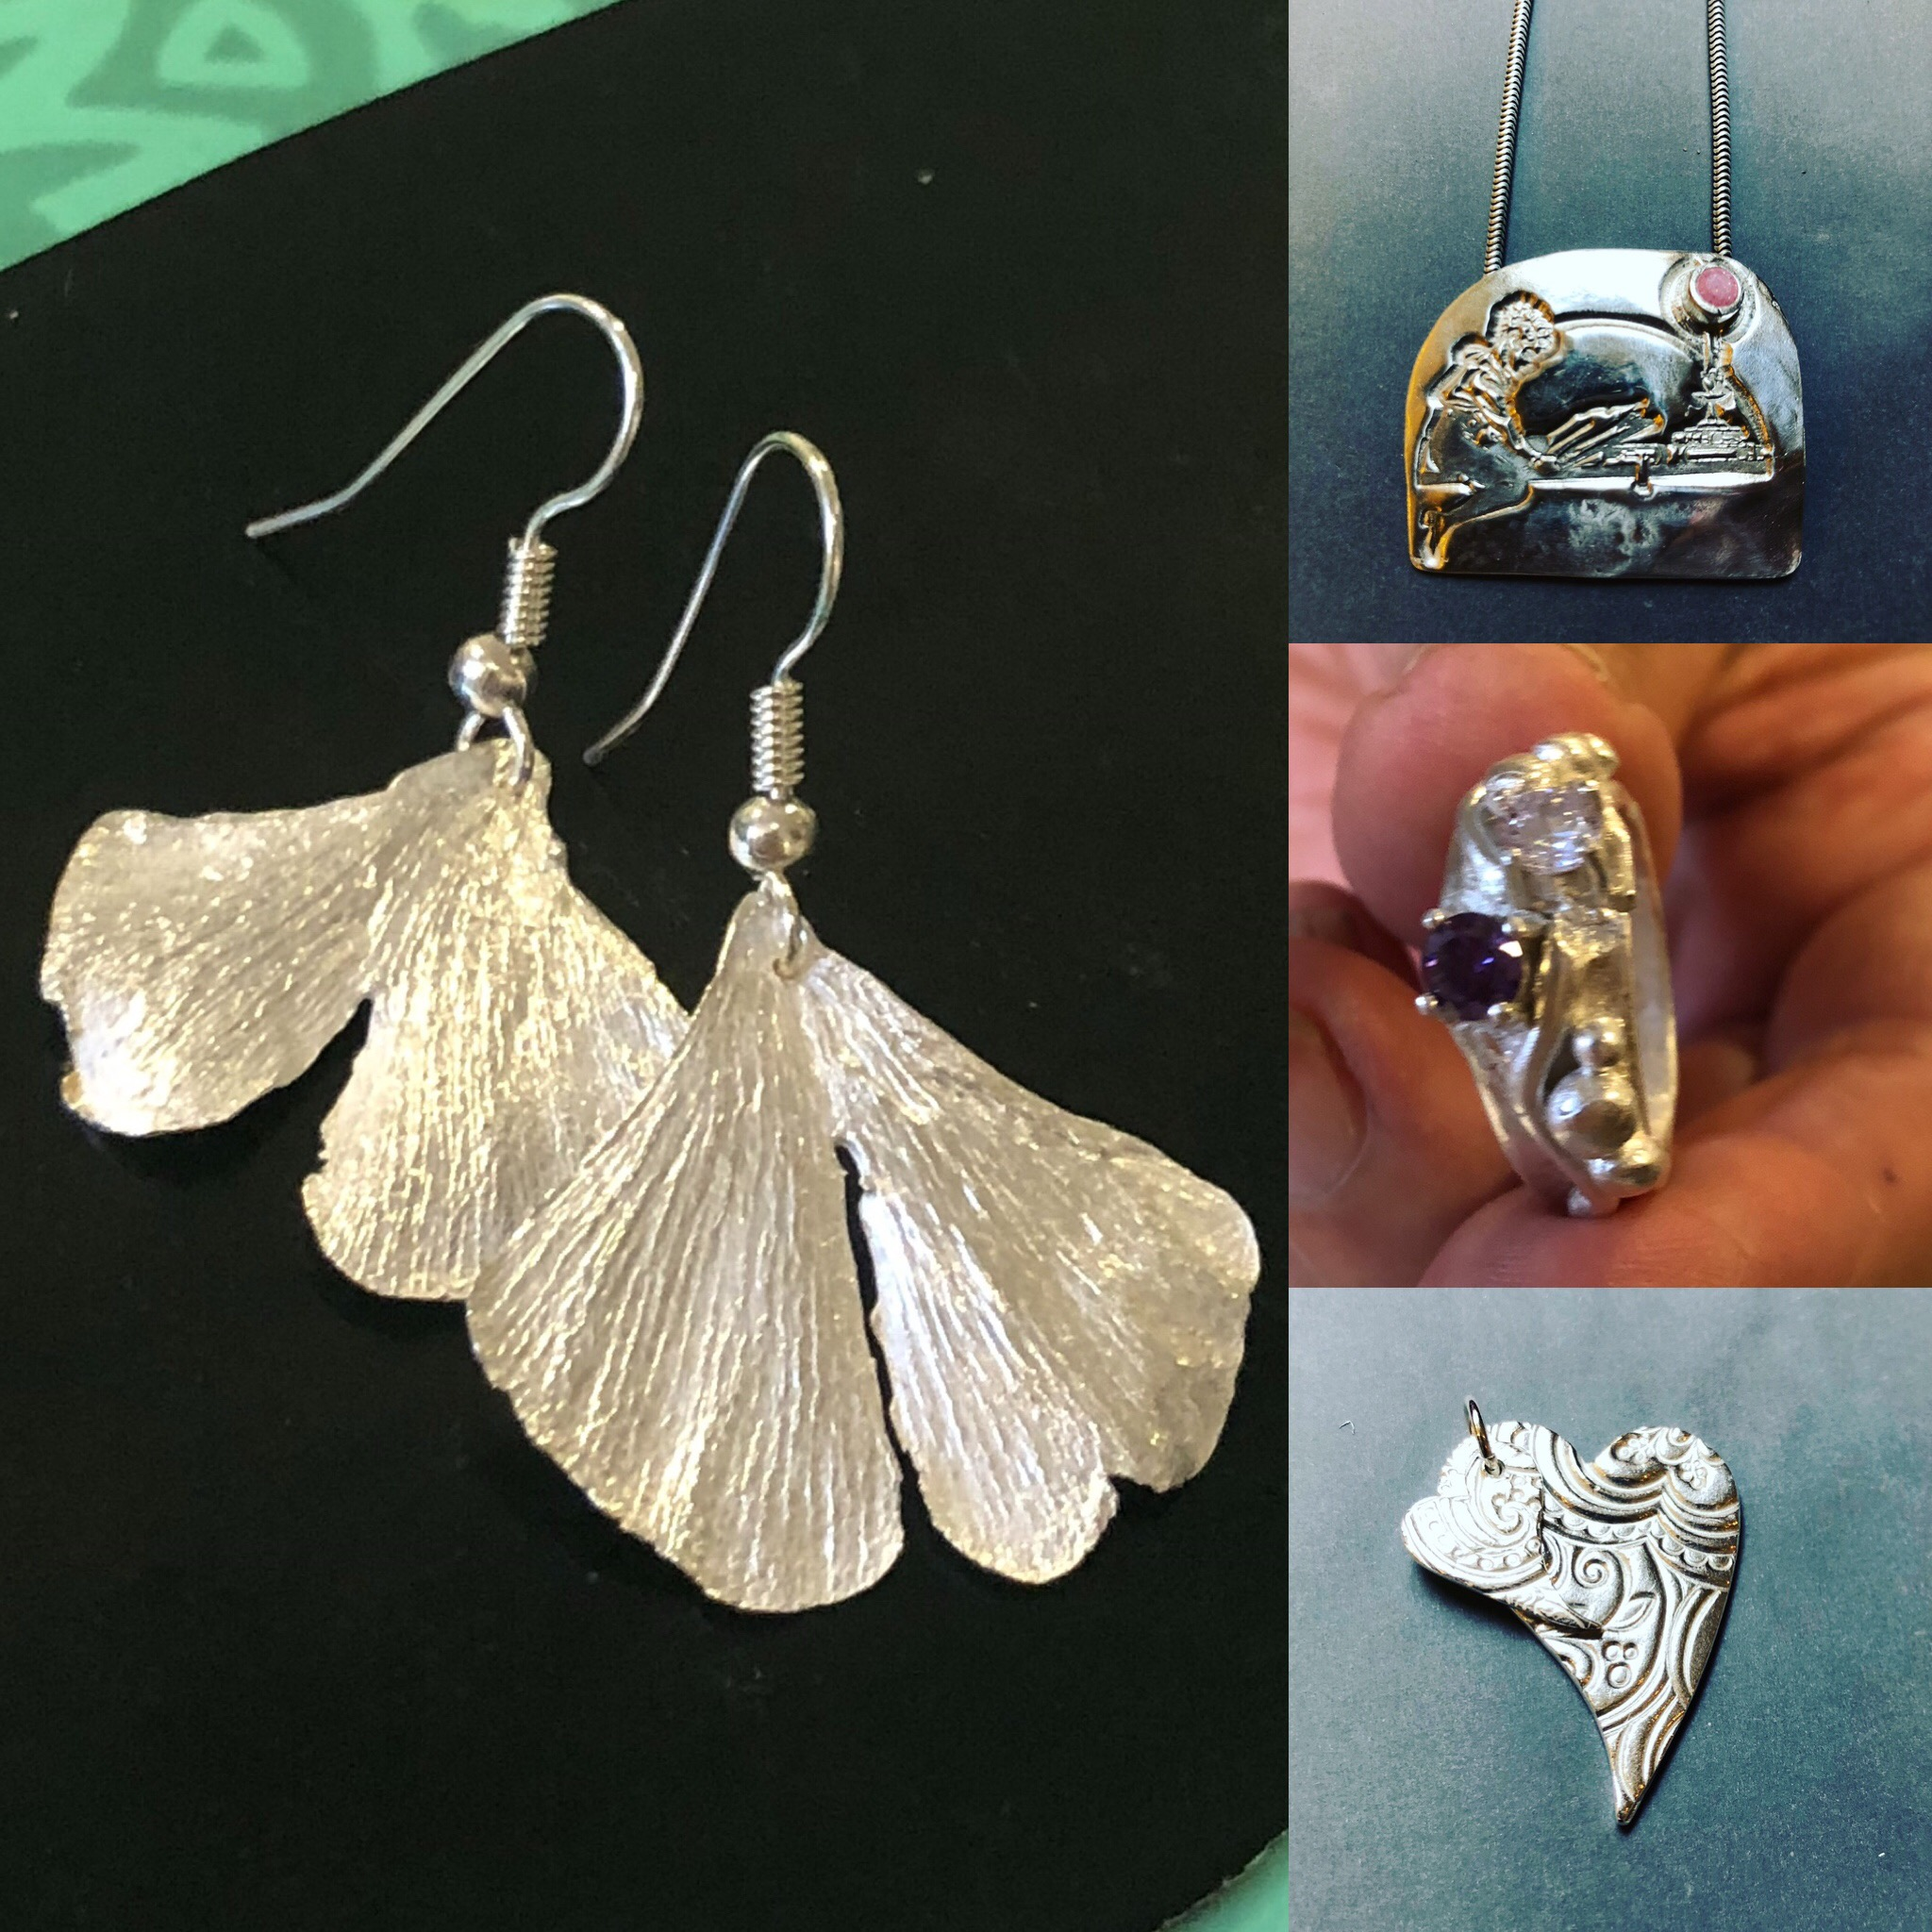 Liz jewellery samples.JPG